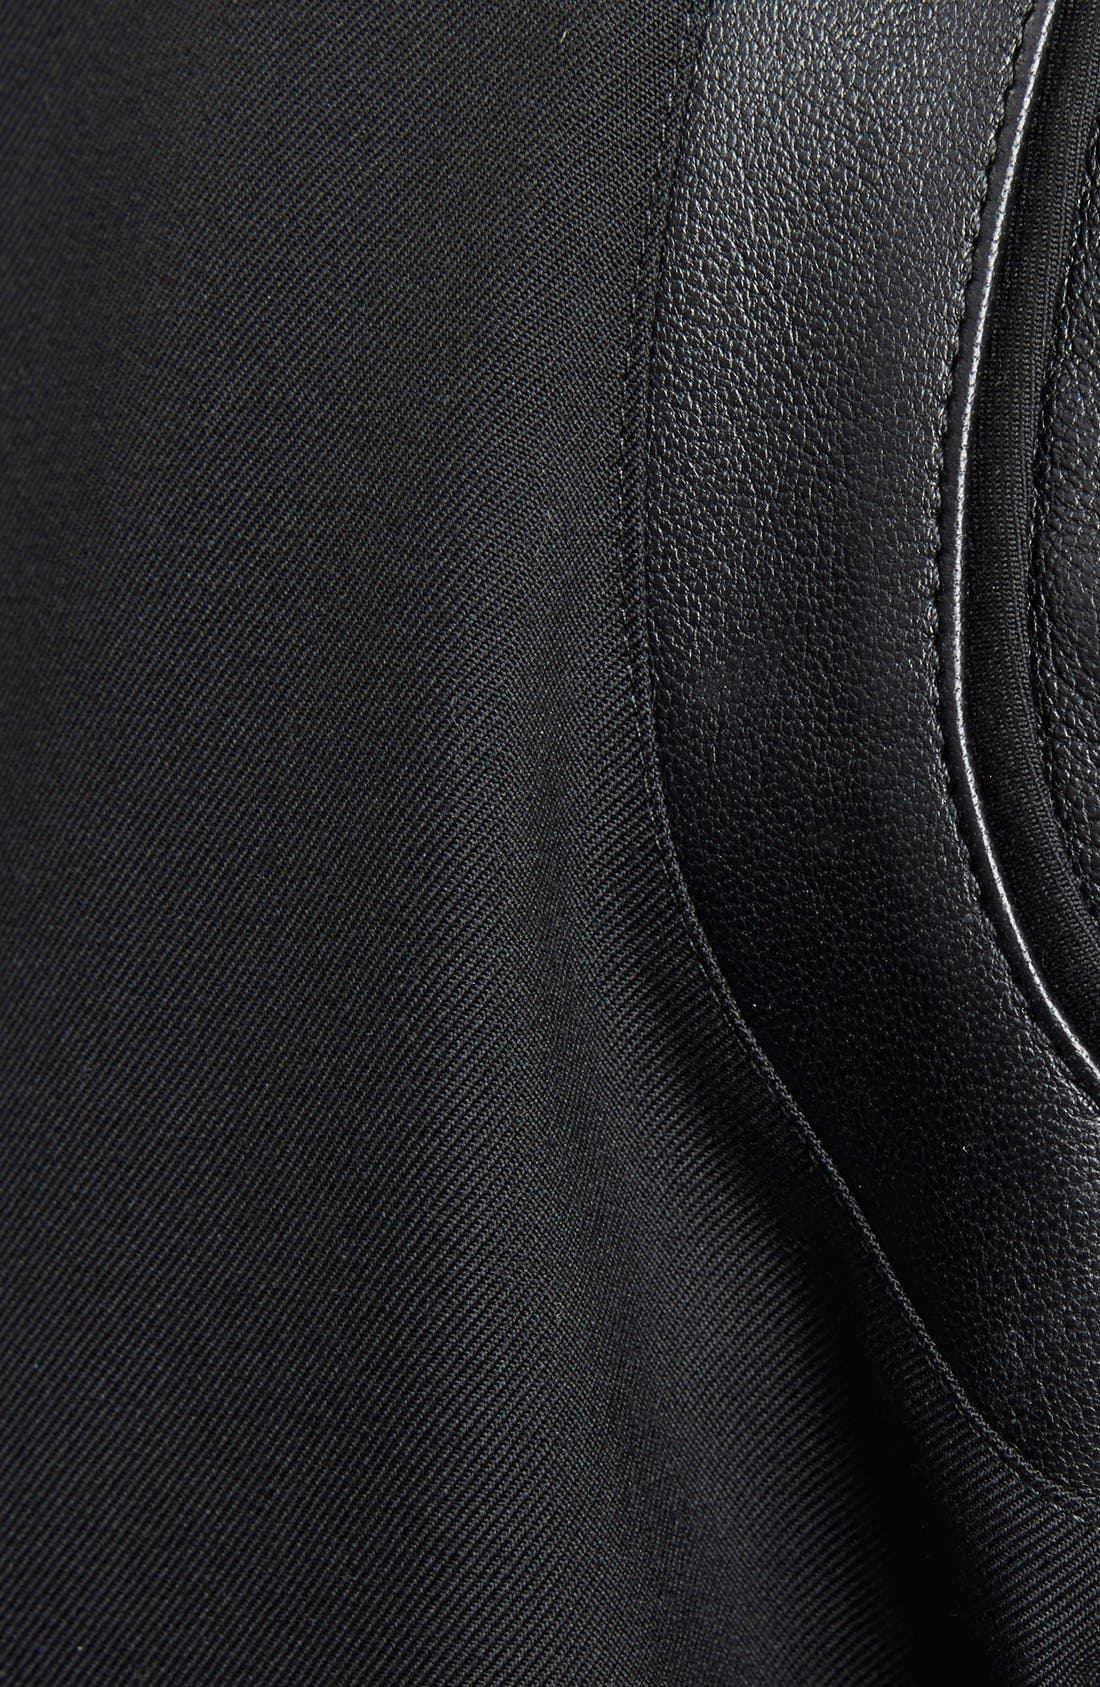 'Teddy' Black Leather Trim Bomber Jacket,                             Alternate thumbnail 3, color,                             Black